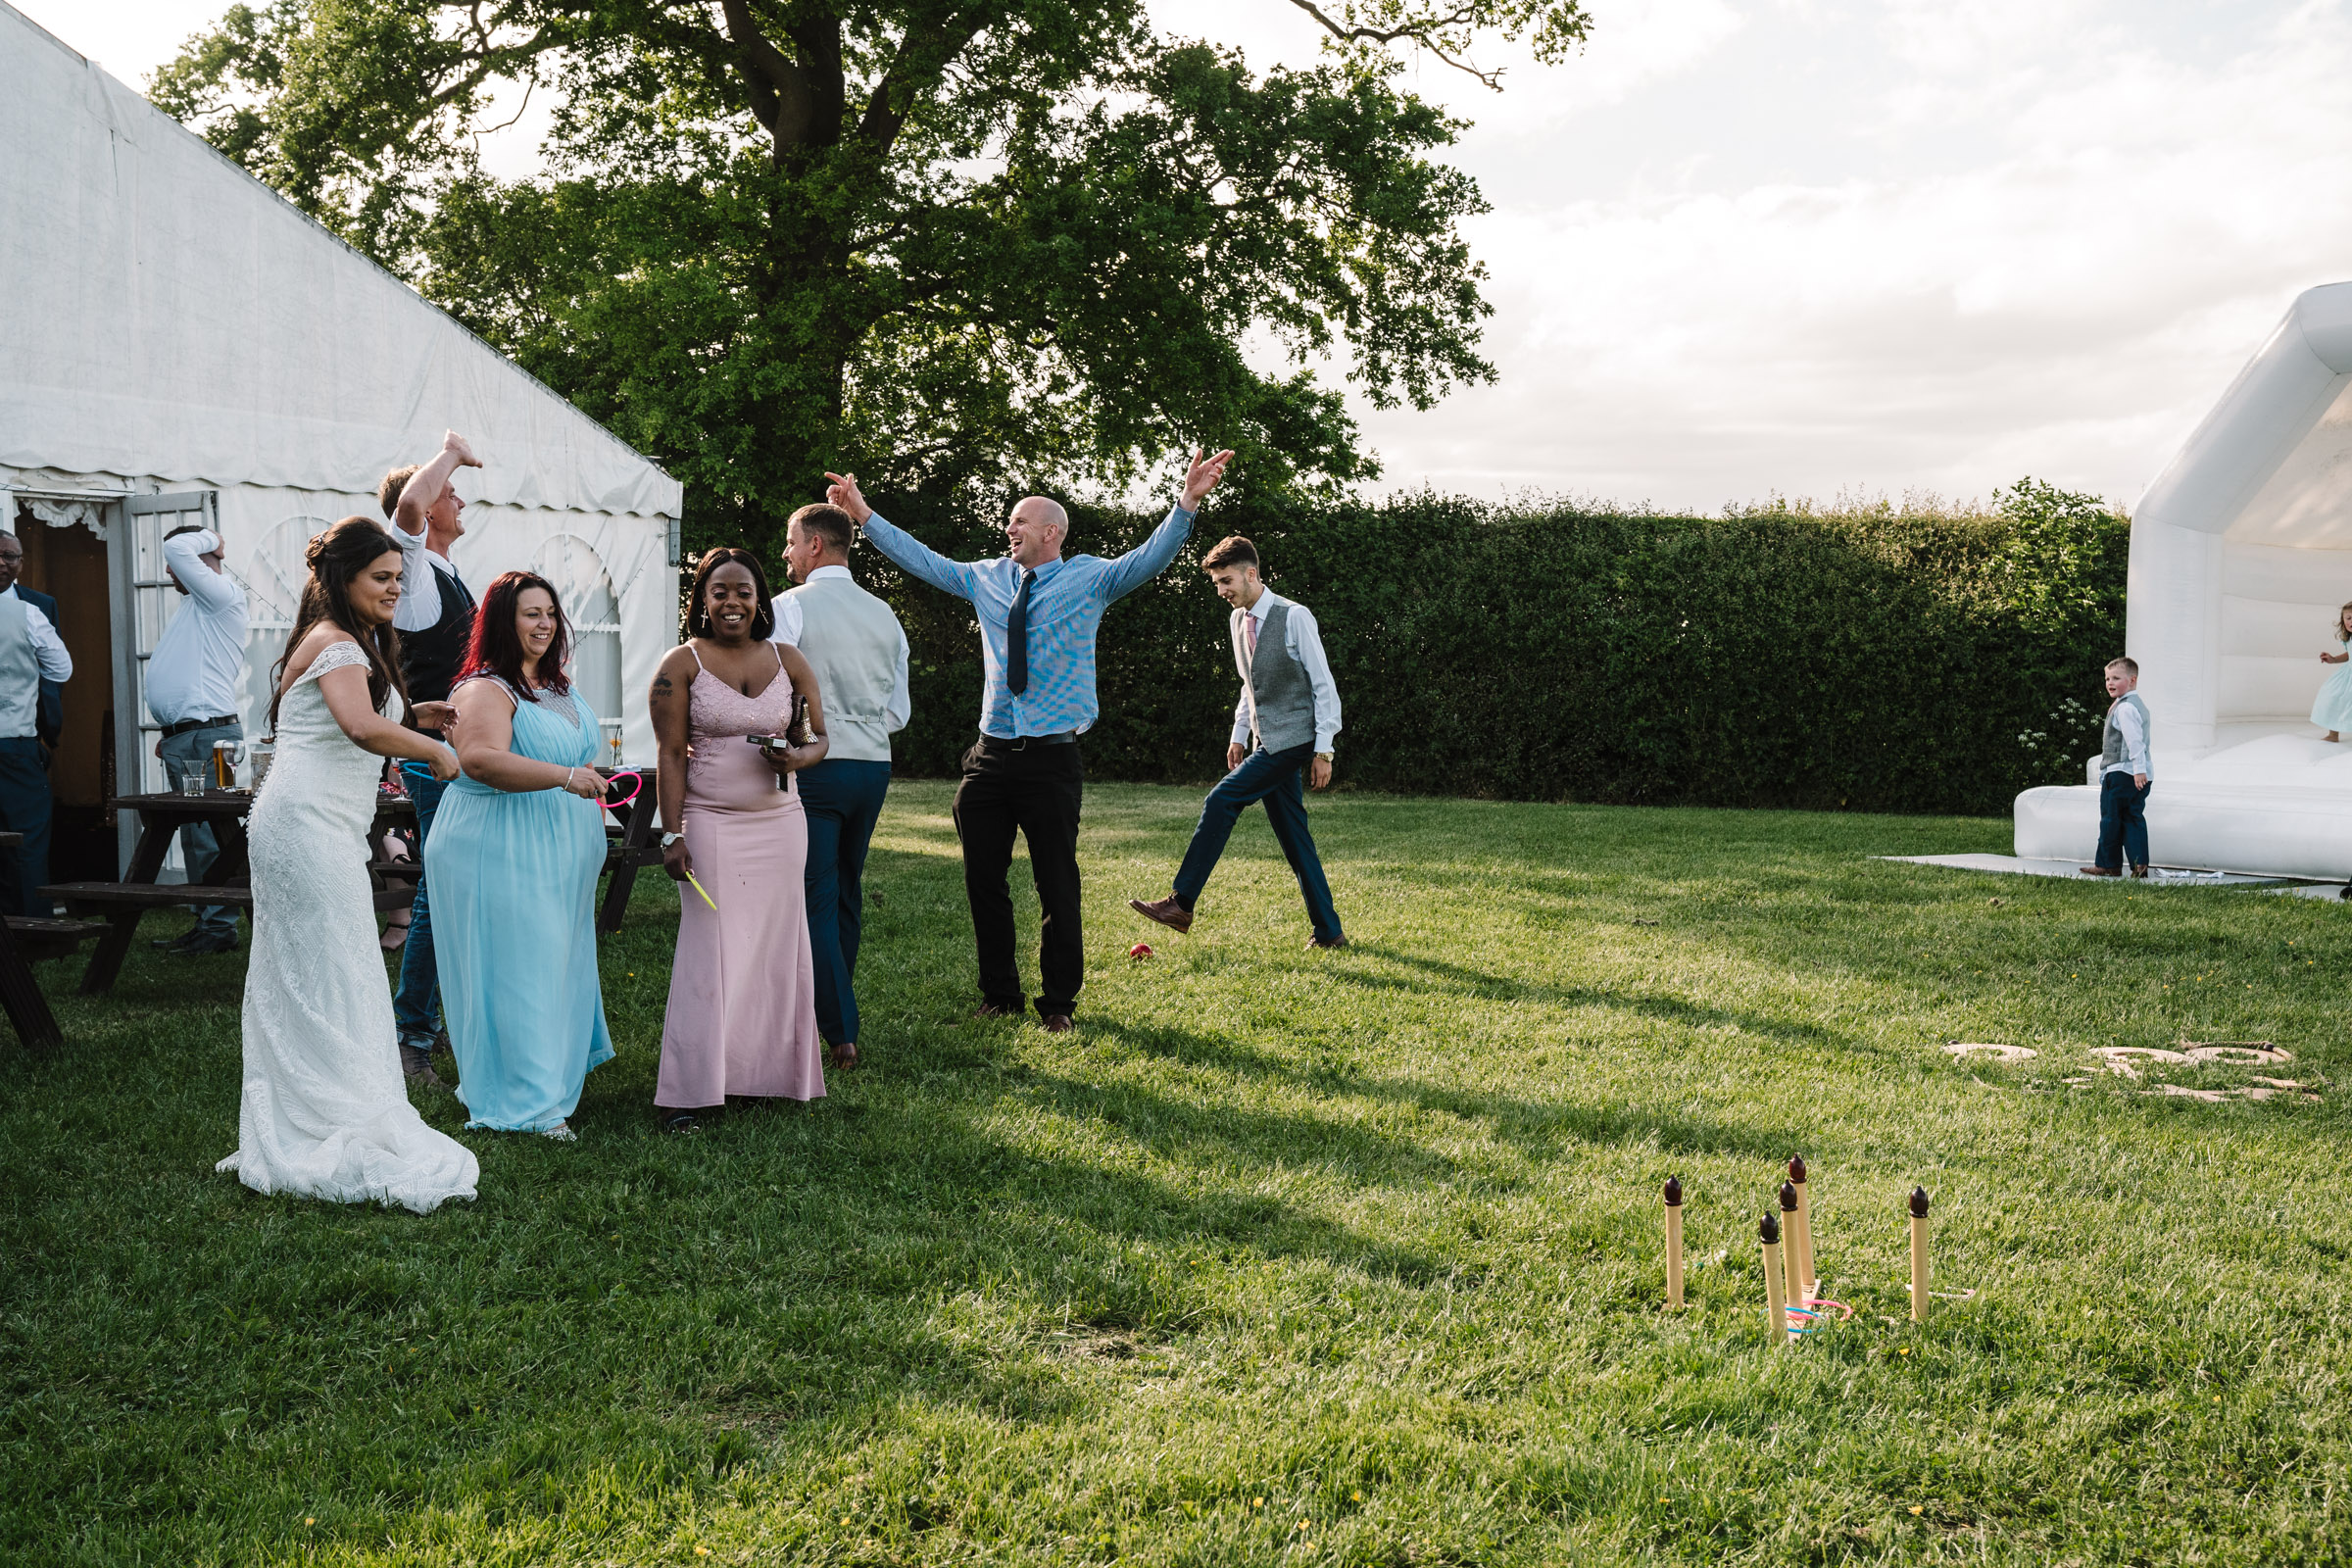 guests at royal arms hotel wedding, playing garden games